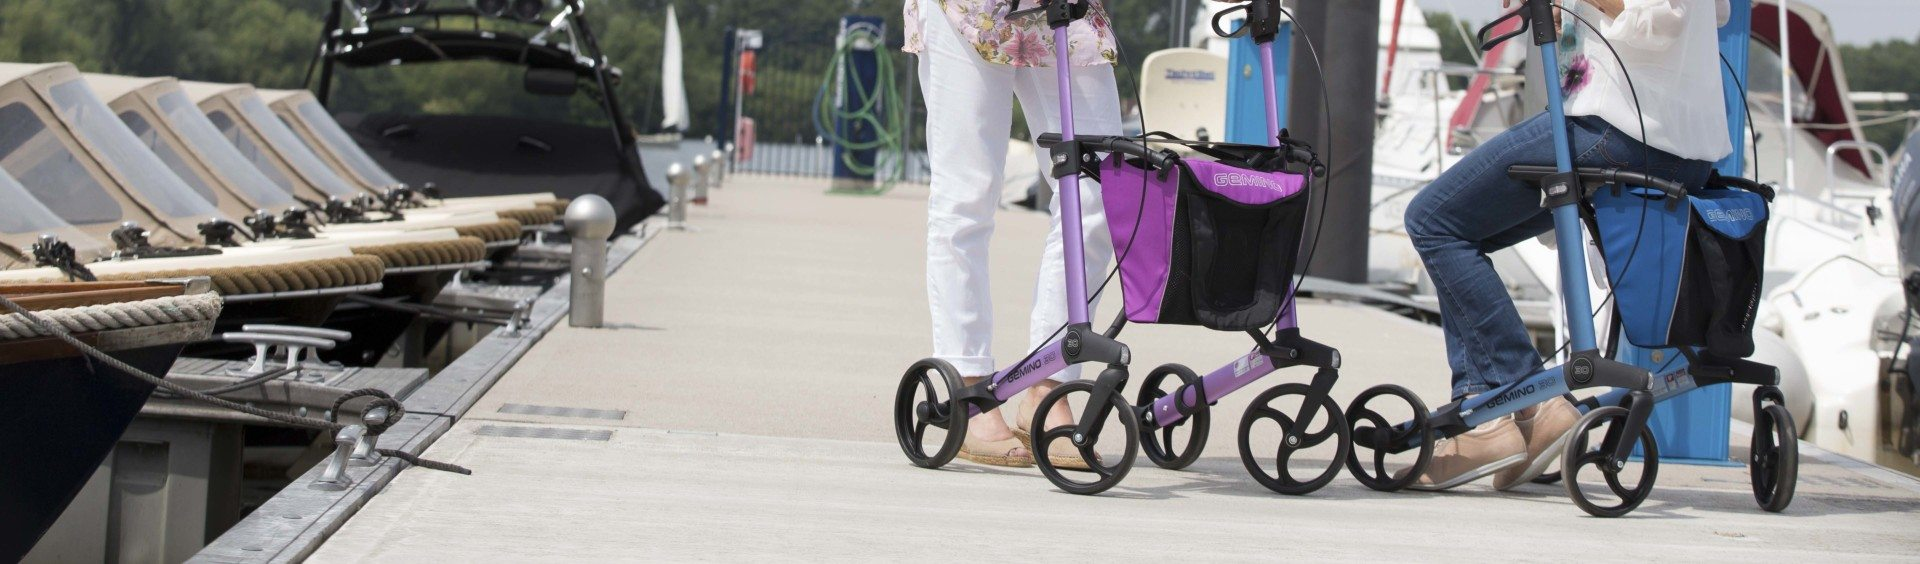 Gemino rollator van Sunrise Medical